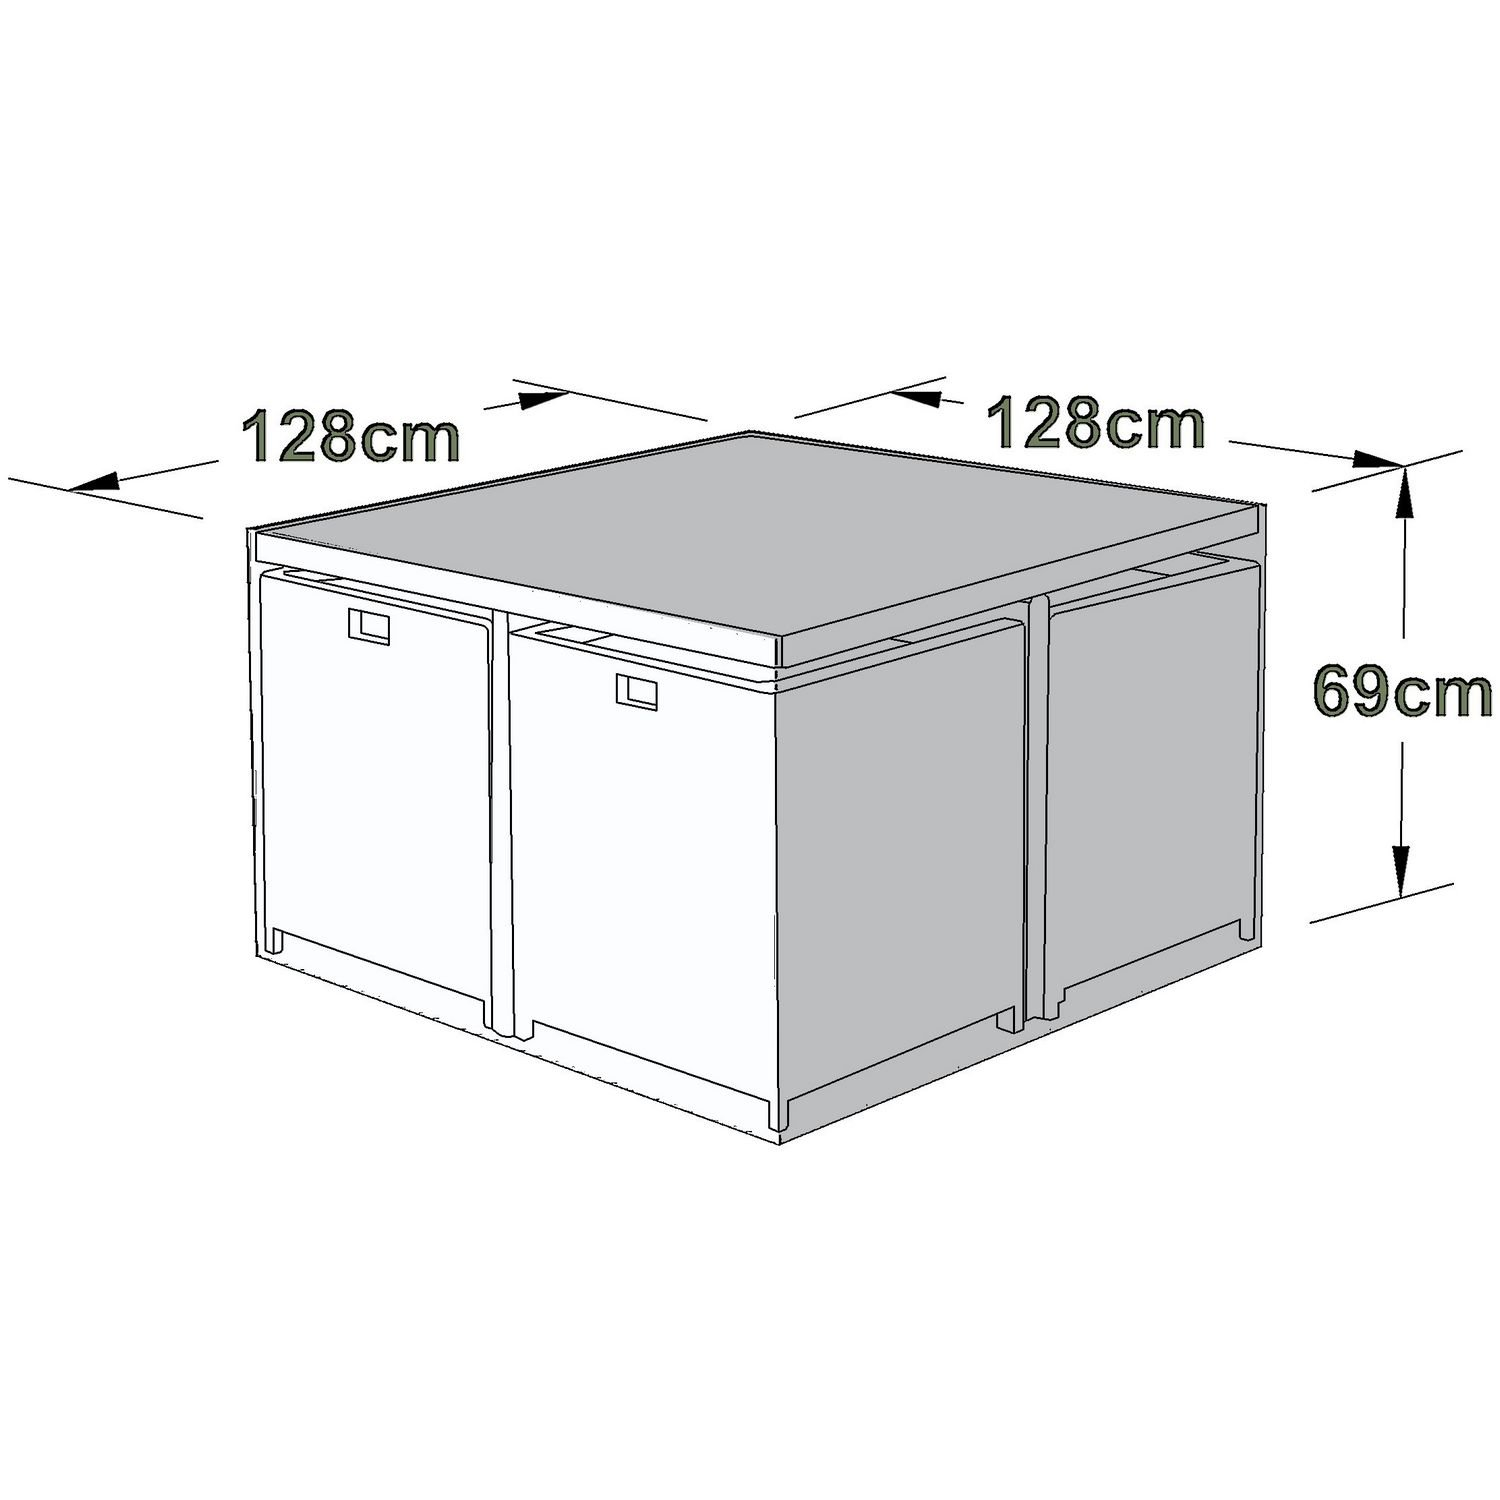 image-Maze Rattan Outdoor Furniture Cover for 4 Seat Cube Set